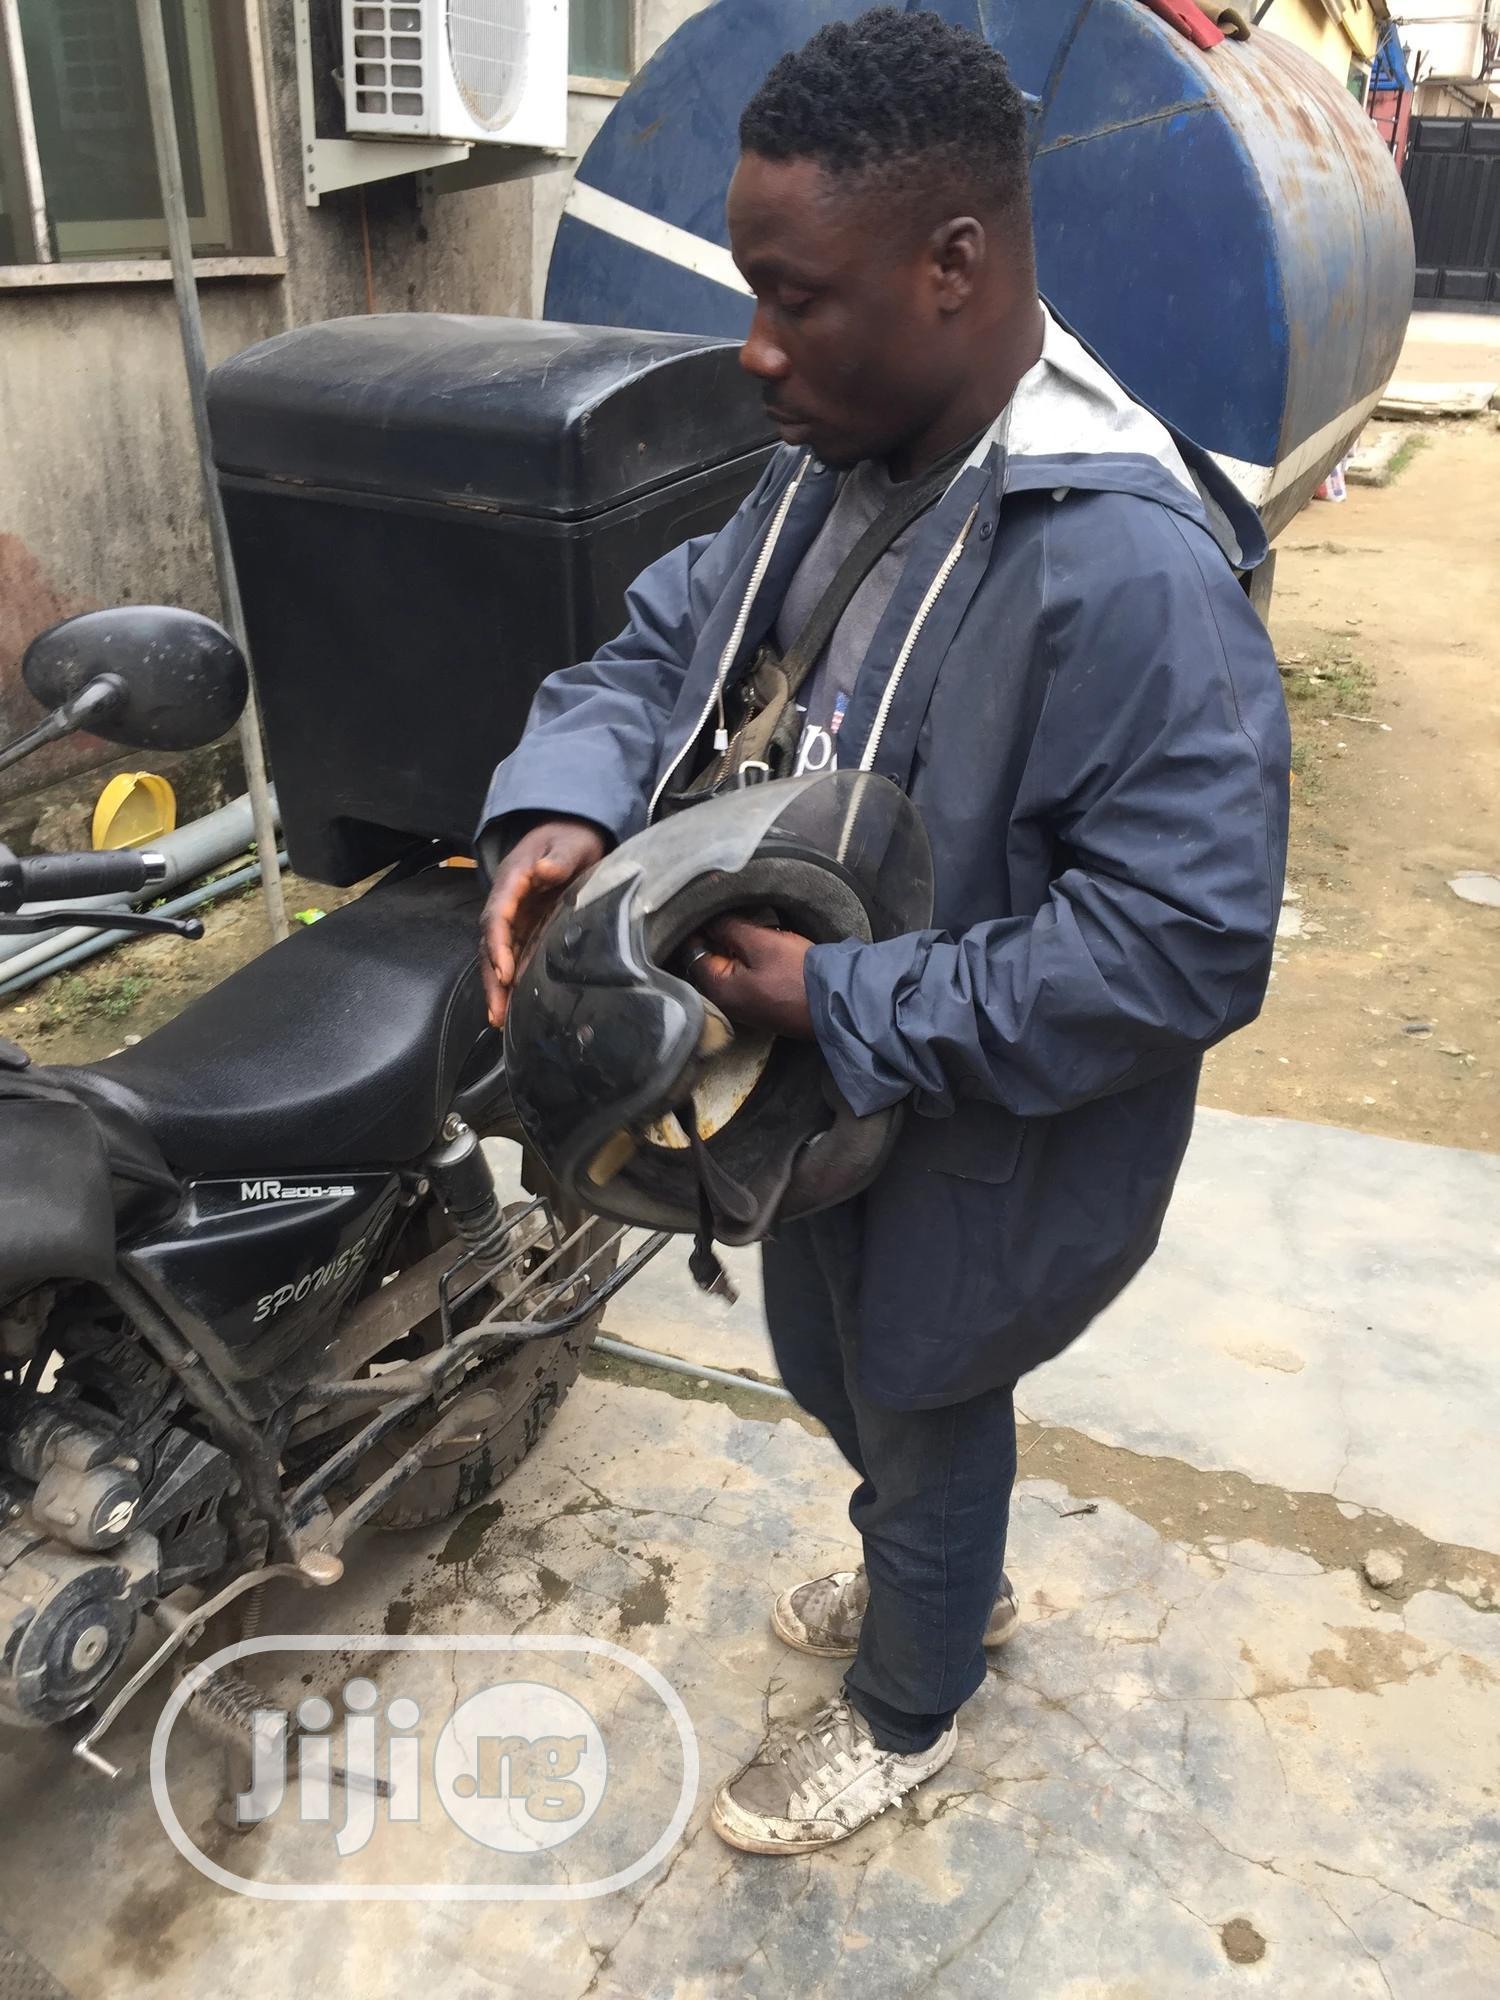 Archive: Dispatch Riders Needed